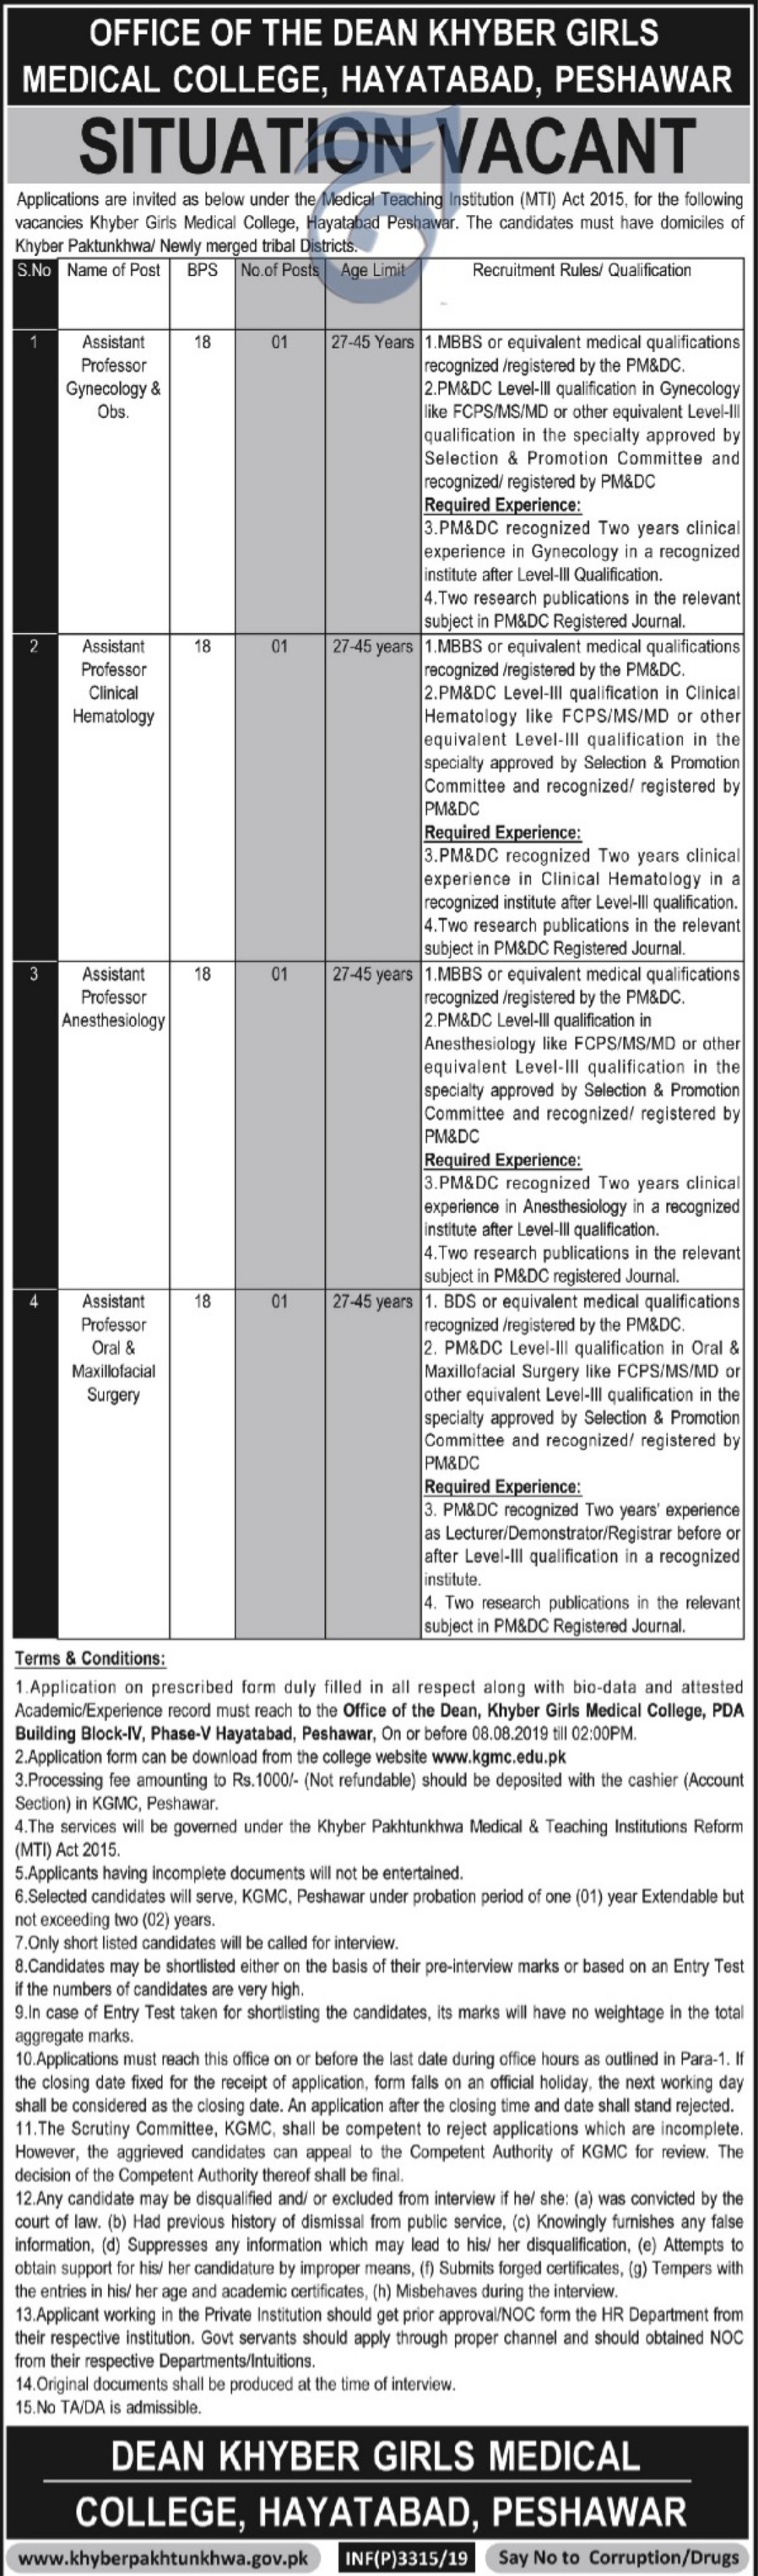 Khyber Girls Medical College KGMC Hayatabad Peshawar Jobs 2019 KPK